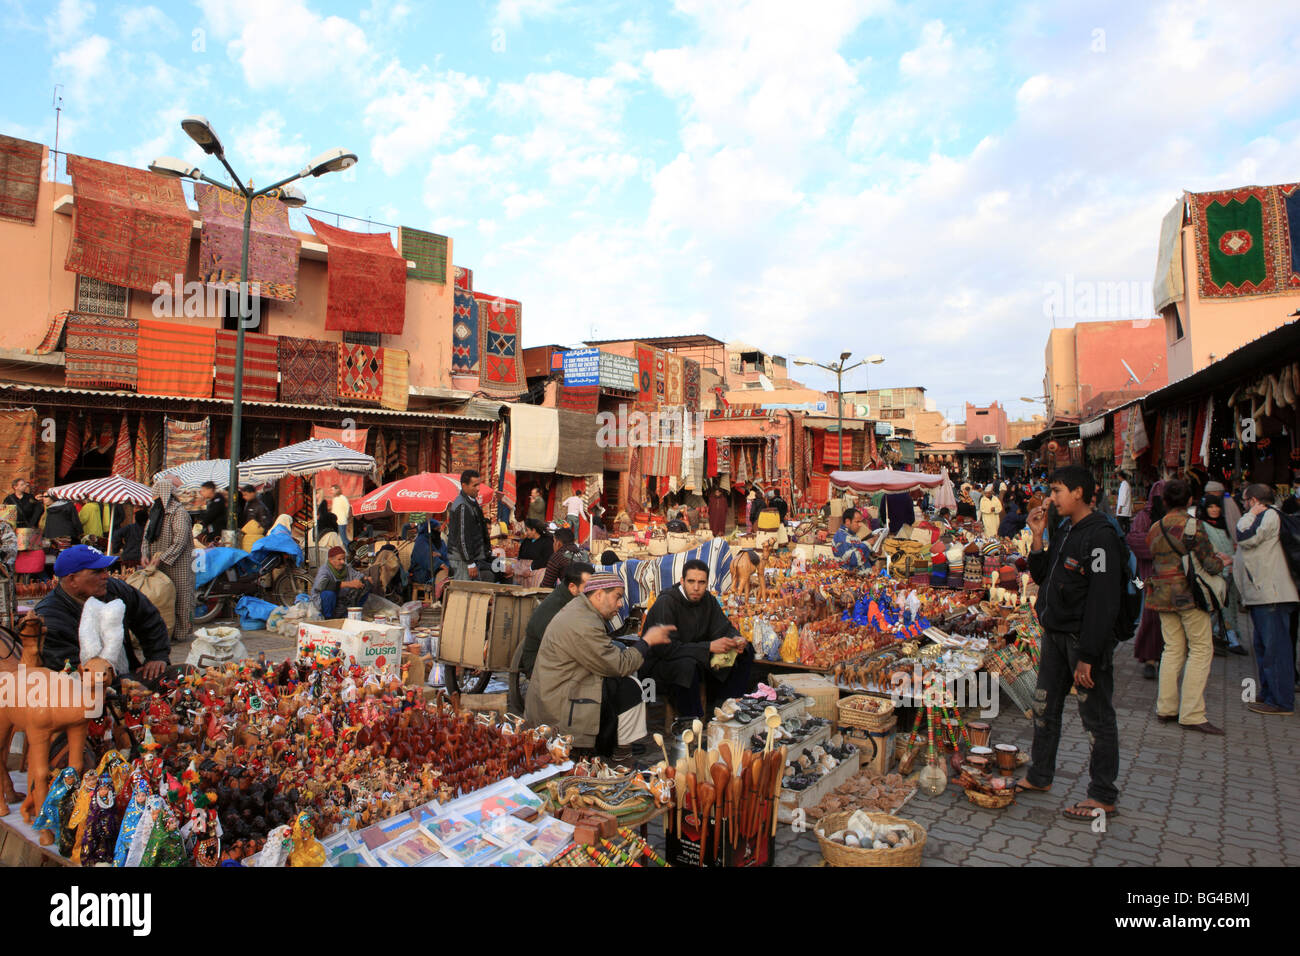 Souks in medina (old walled city), Marrakesh, Morocco, North Africa, Africa Stock Photo